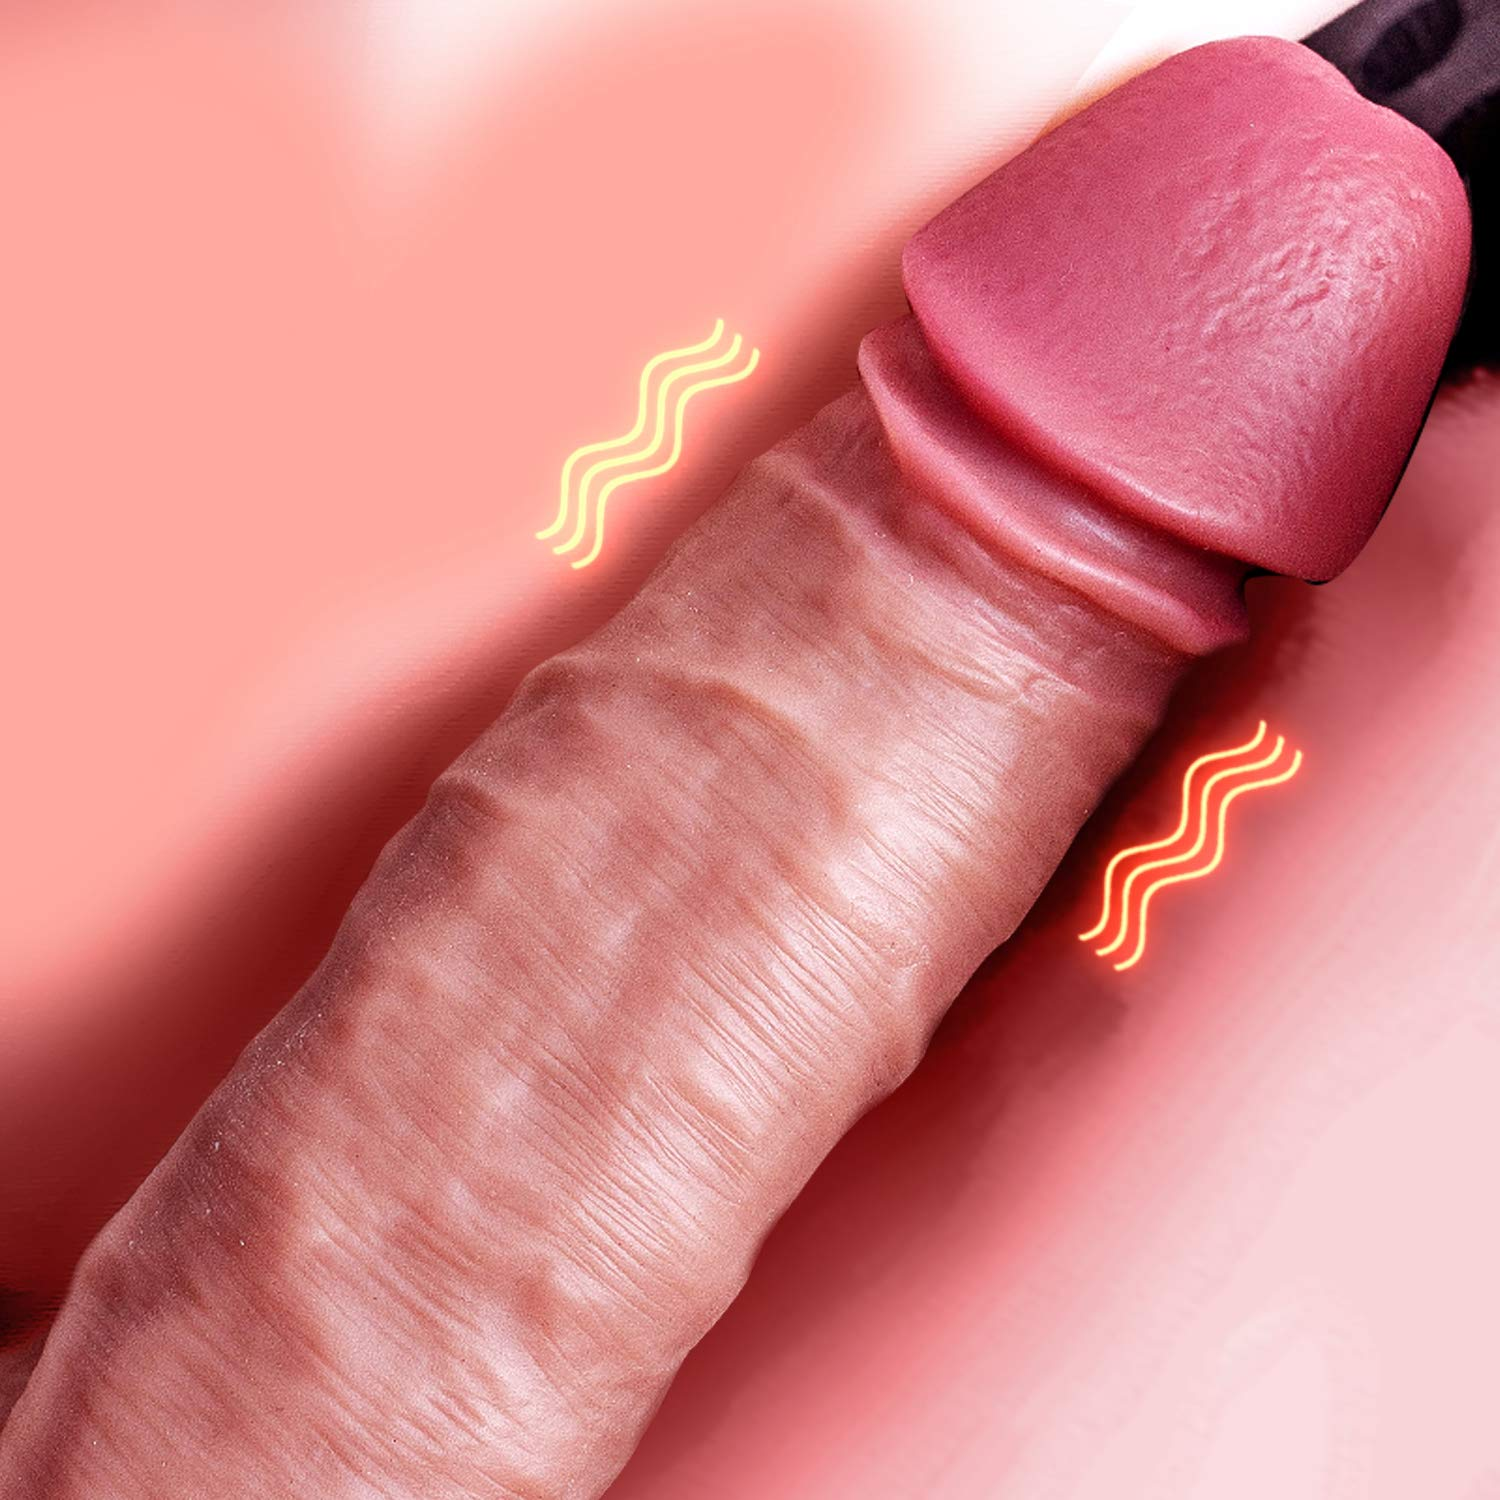 Vibrating Realistic Double-Layer Large Dildo, Remote Remote Control Vibration Heating Soft Silicone with Suction Cup,Vibrator Simulating Anal Penis, Didlos for Sex Women